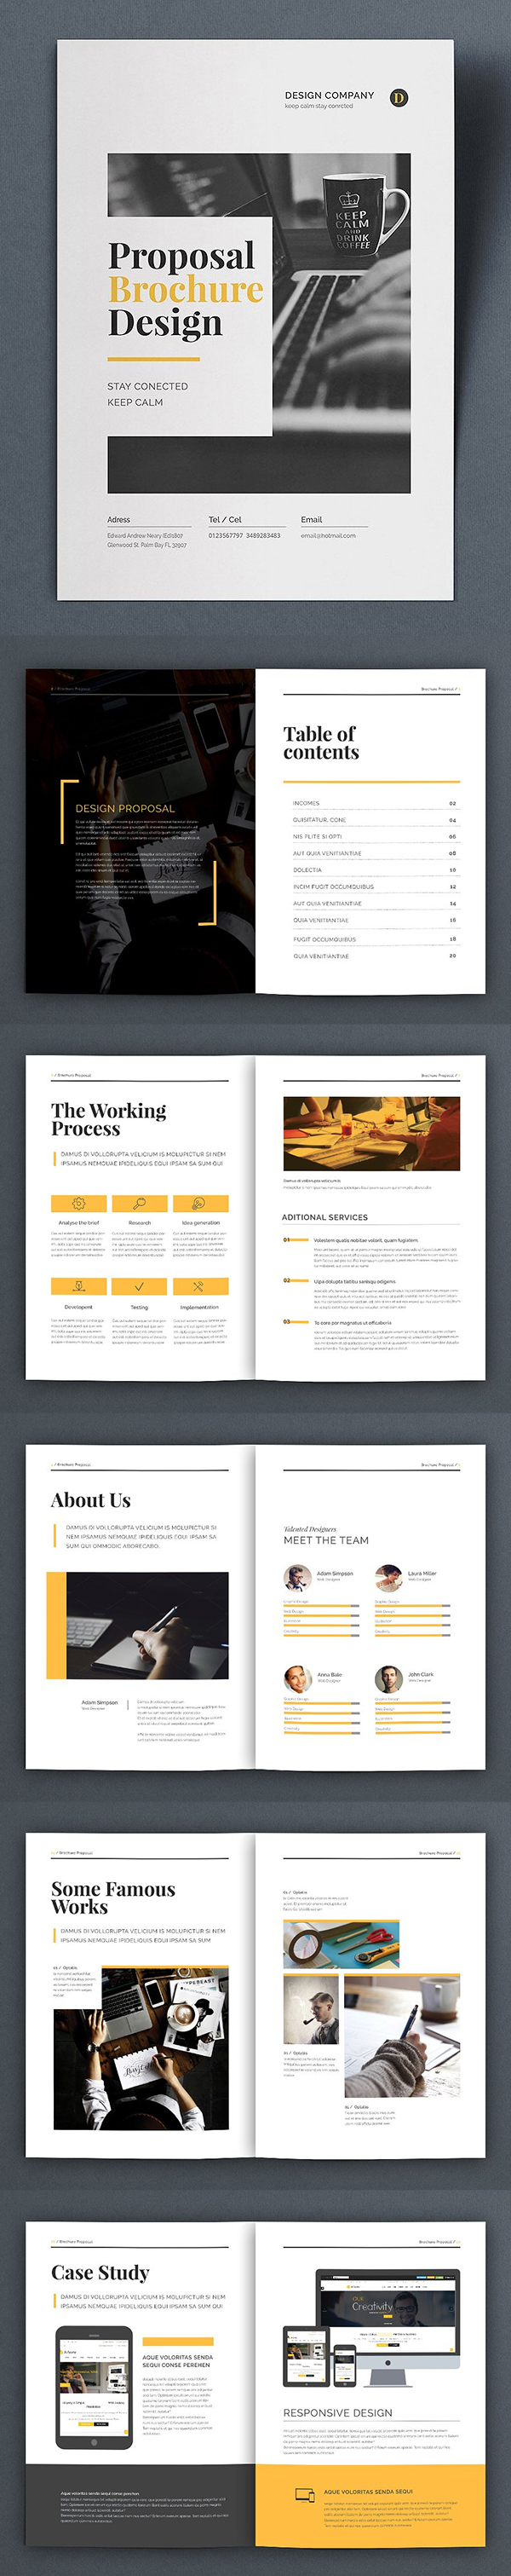 Professional Business Proposal Templates Design - 26